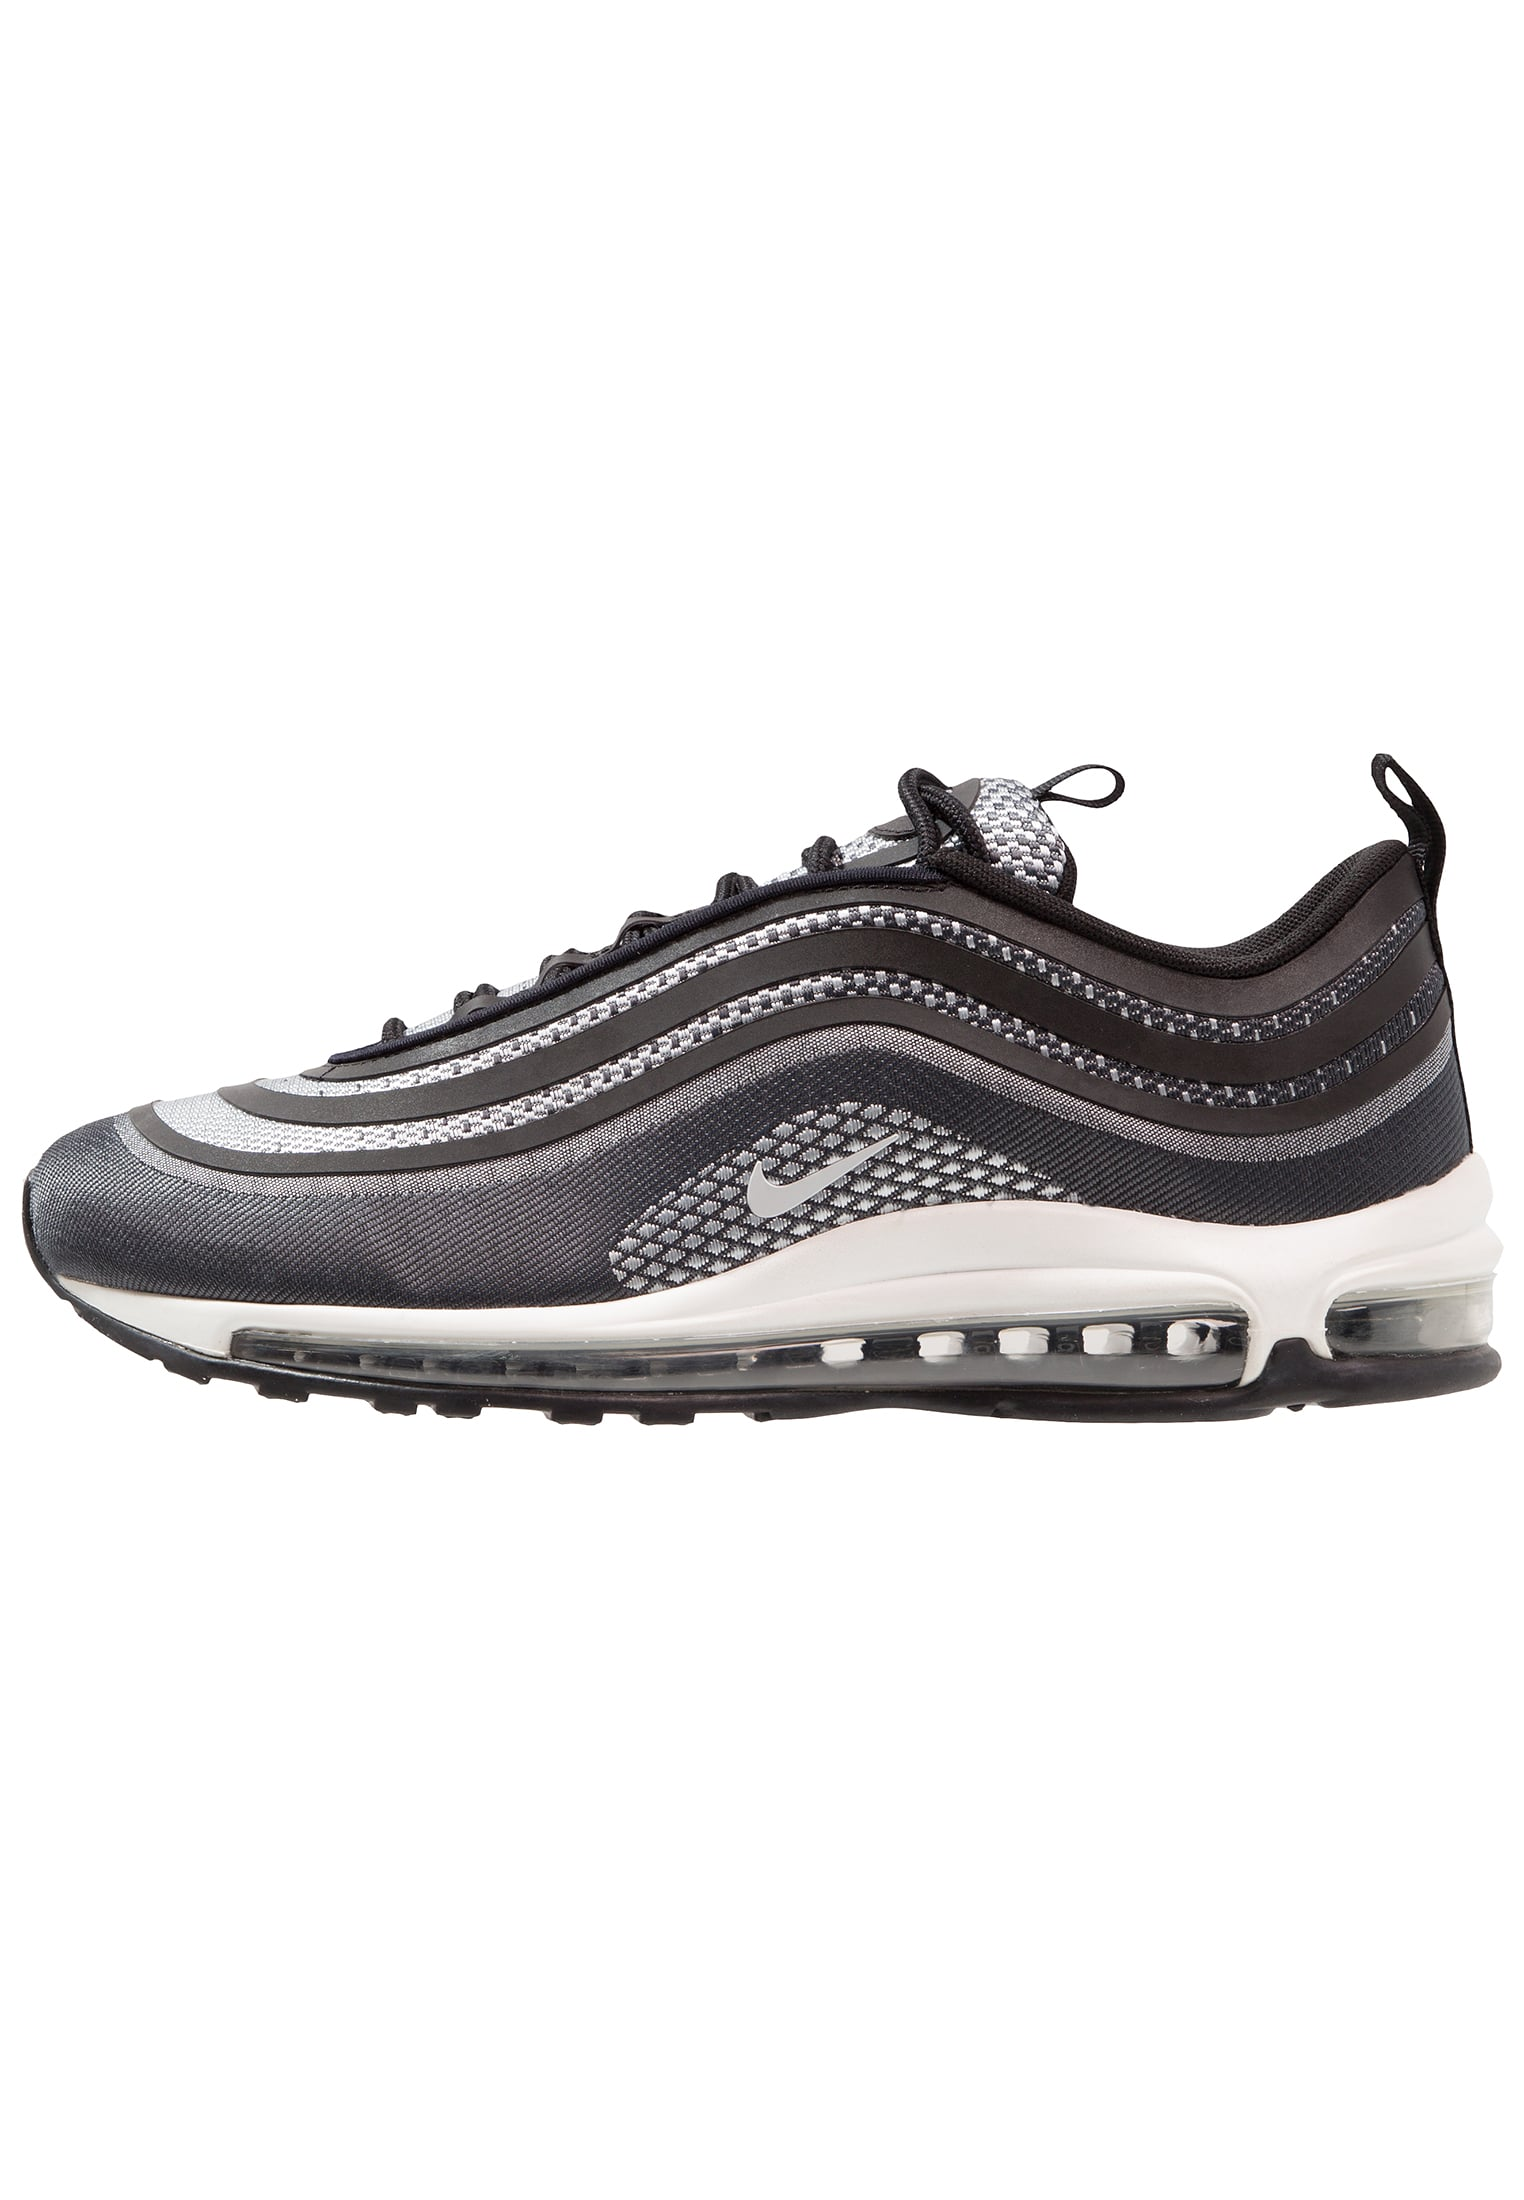 low priced 0d5b7 d5907 Nike Air Max 97   La sélection de Zalando